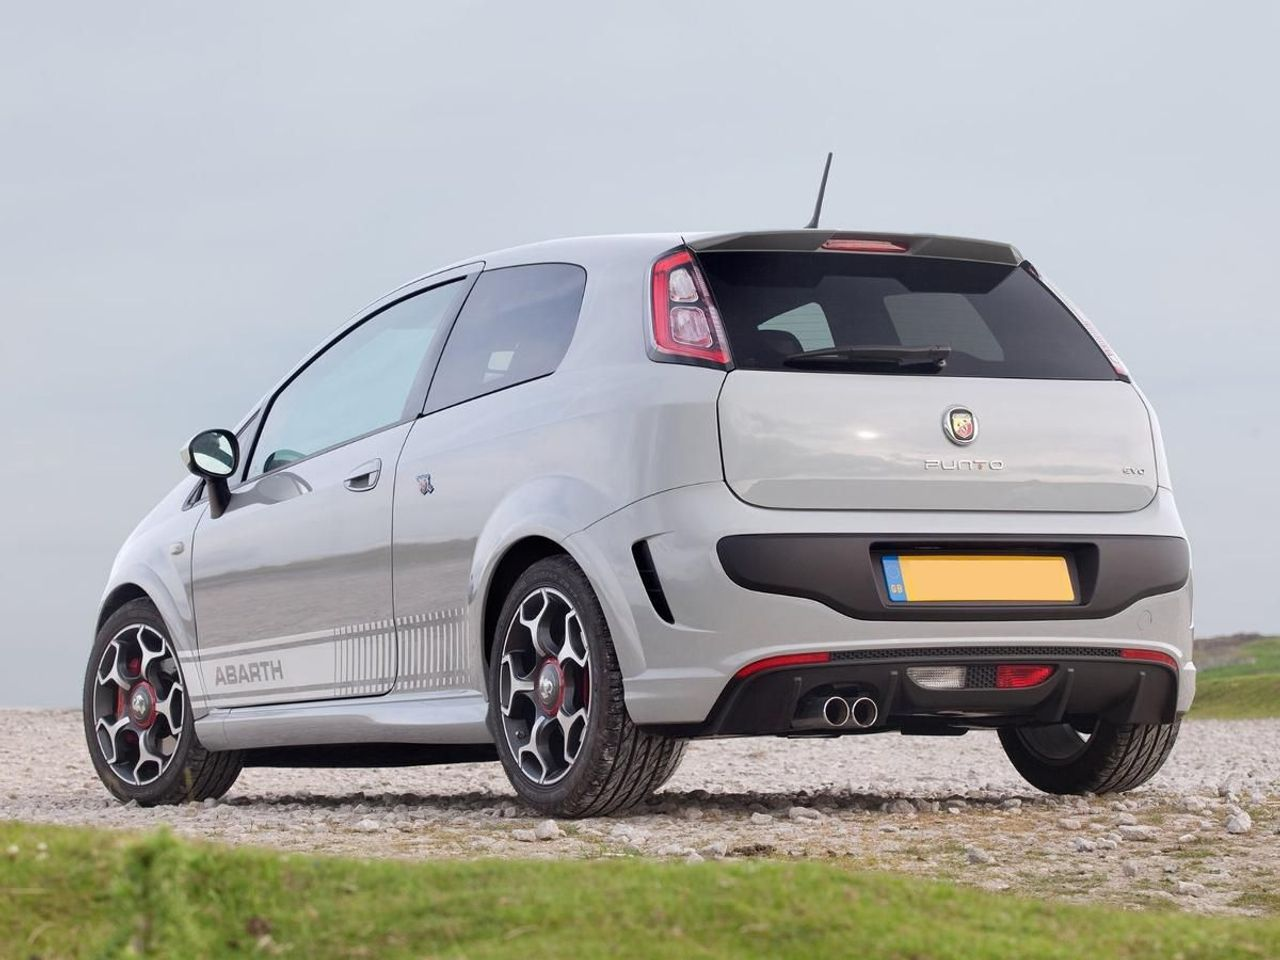 Abarth Punto Evo hatchback